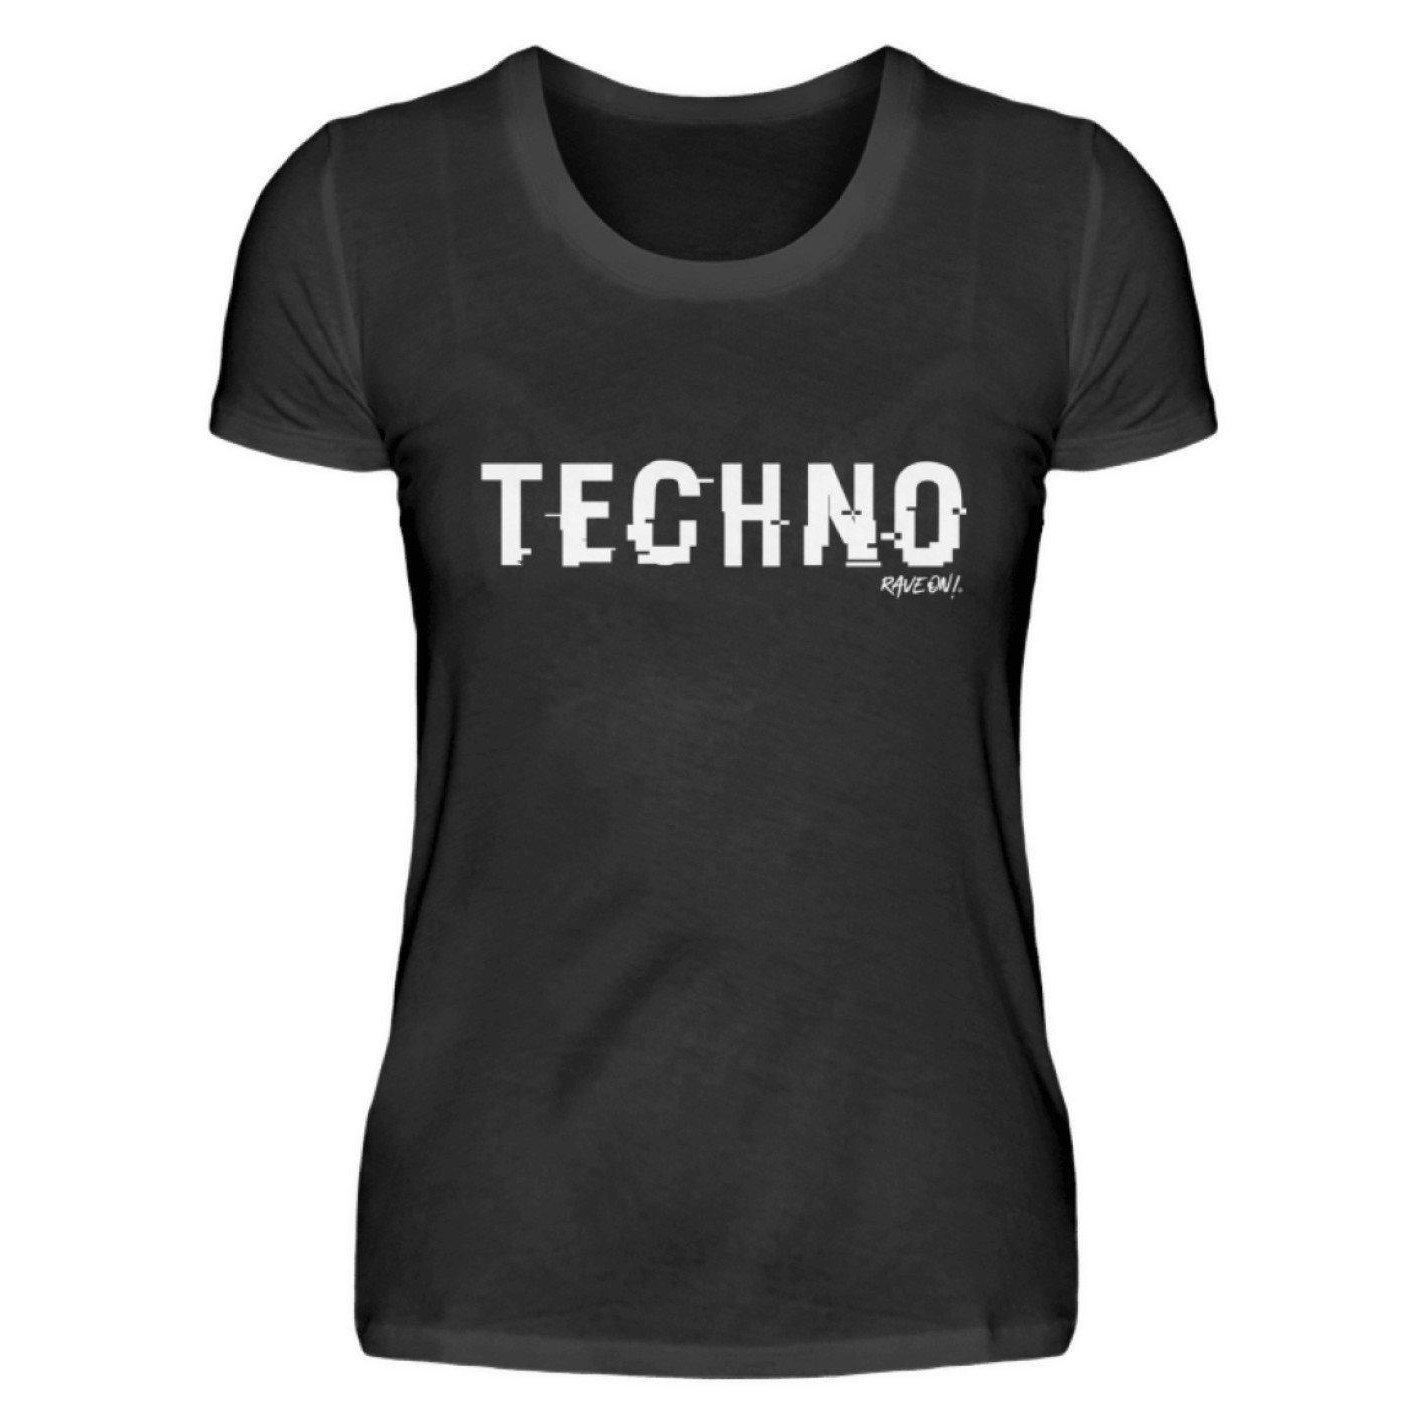 TECHNO shifted Rave On!® - Ladies Shirt Ladies Basic T-Shirt Black / S / Ladies Shirt - Rave On!® the club & techno scene shop for cool young fashion streetwear style & fashion outfits + sexy festival 420 stuff